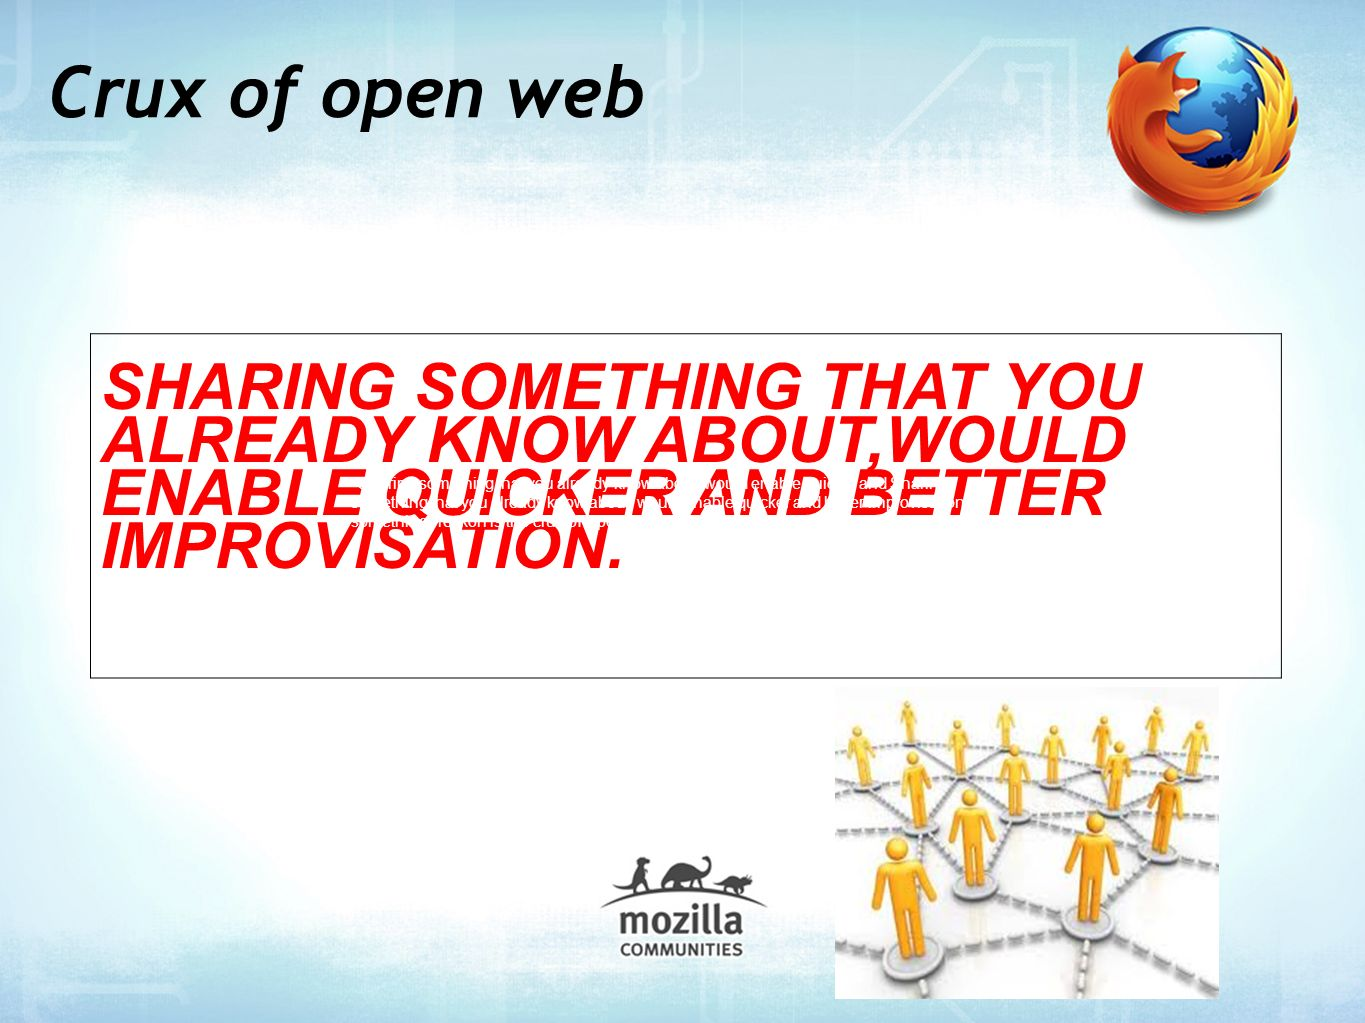 Crux of open web SHARING SOMETHING THAT YOU ALREADY KNOW ABOUT,WOULD ENABLE QUICKER AND BETTER IMPROVISATION.